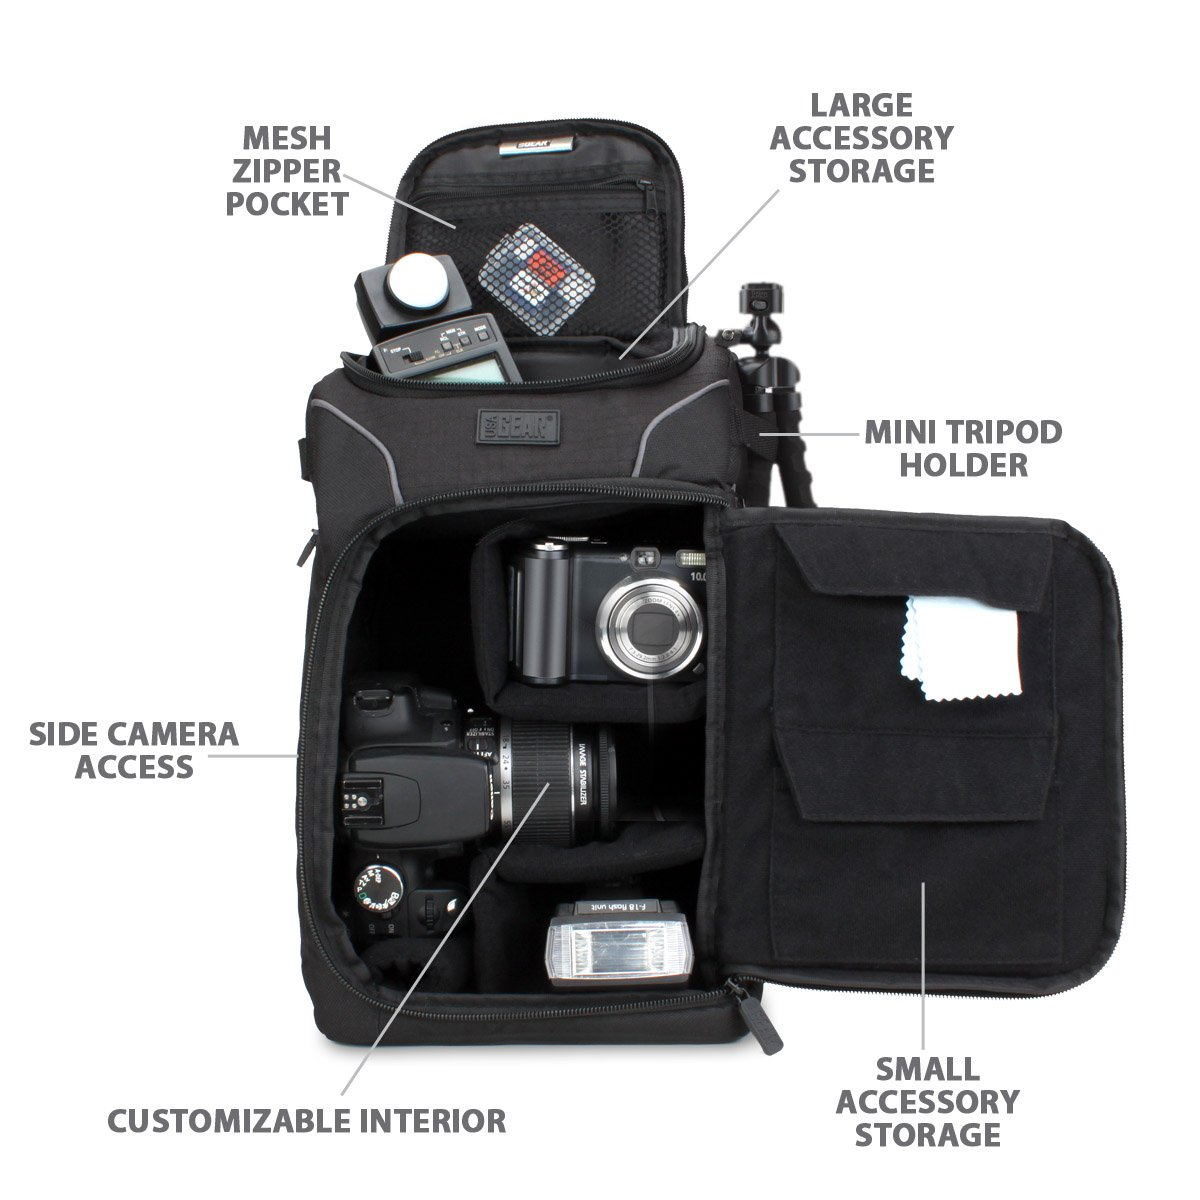 Amazon.com : Portable DSLR Camera Bag by USA Gear with Rain Cover ...